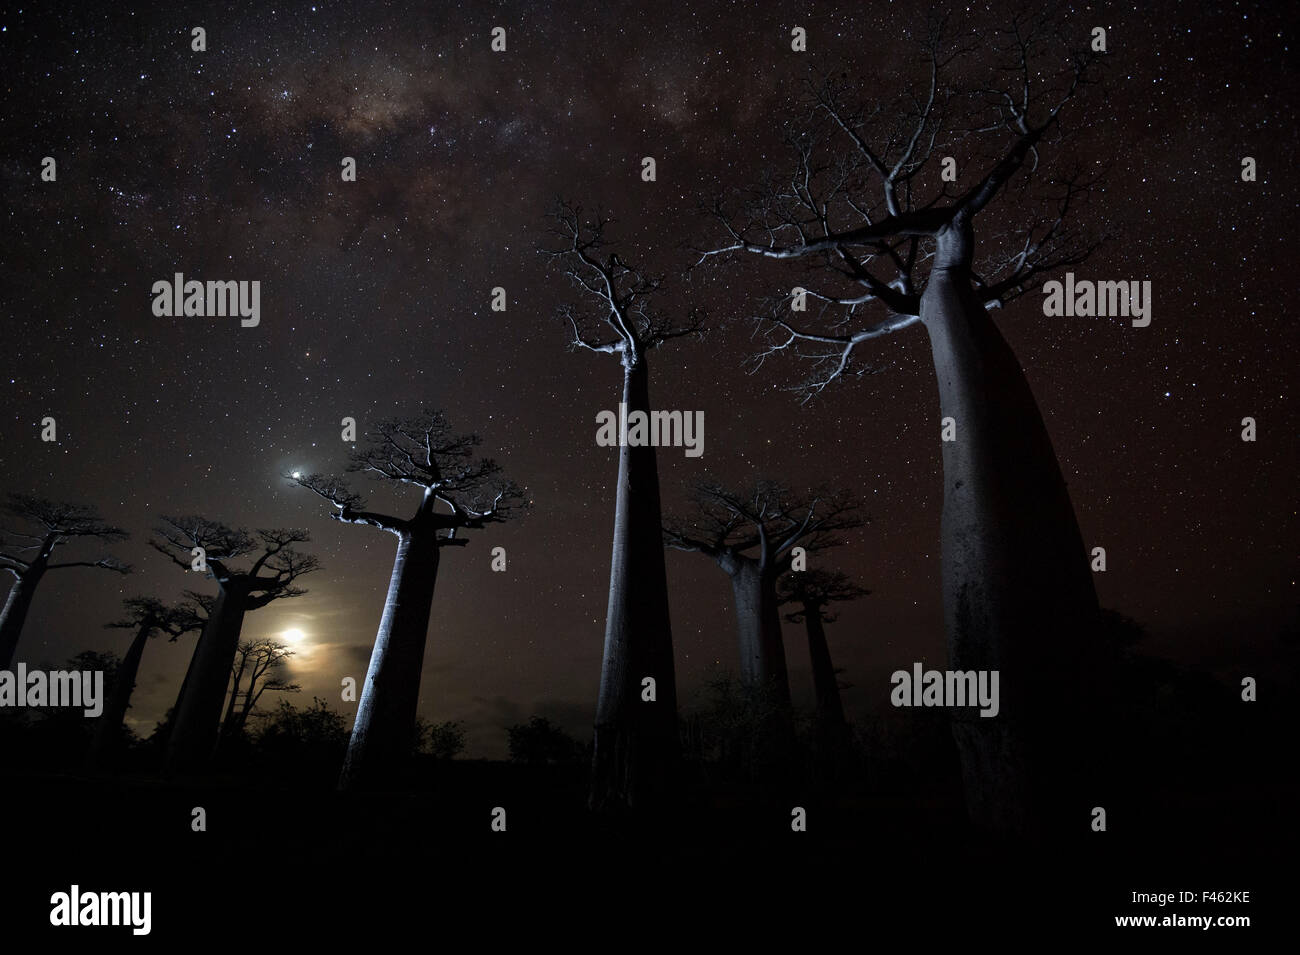 Grandidier's baobab (Adansonia grandidieri) trees on starry night, Baobab Alley, Menabe, Madagascar. Honorable Mention - Stock Image